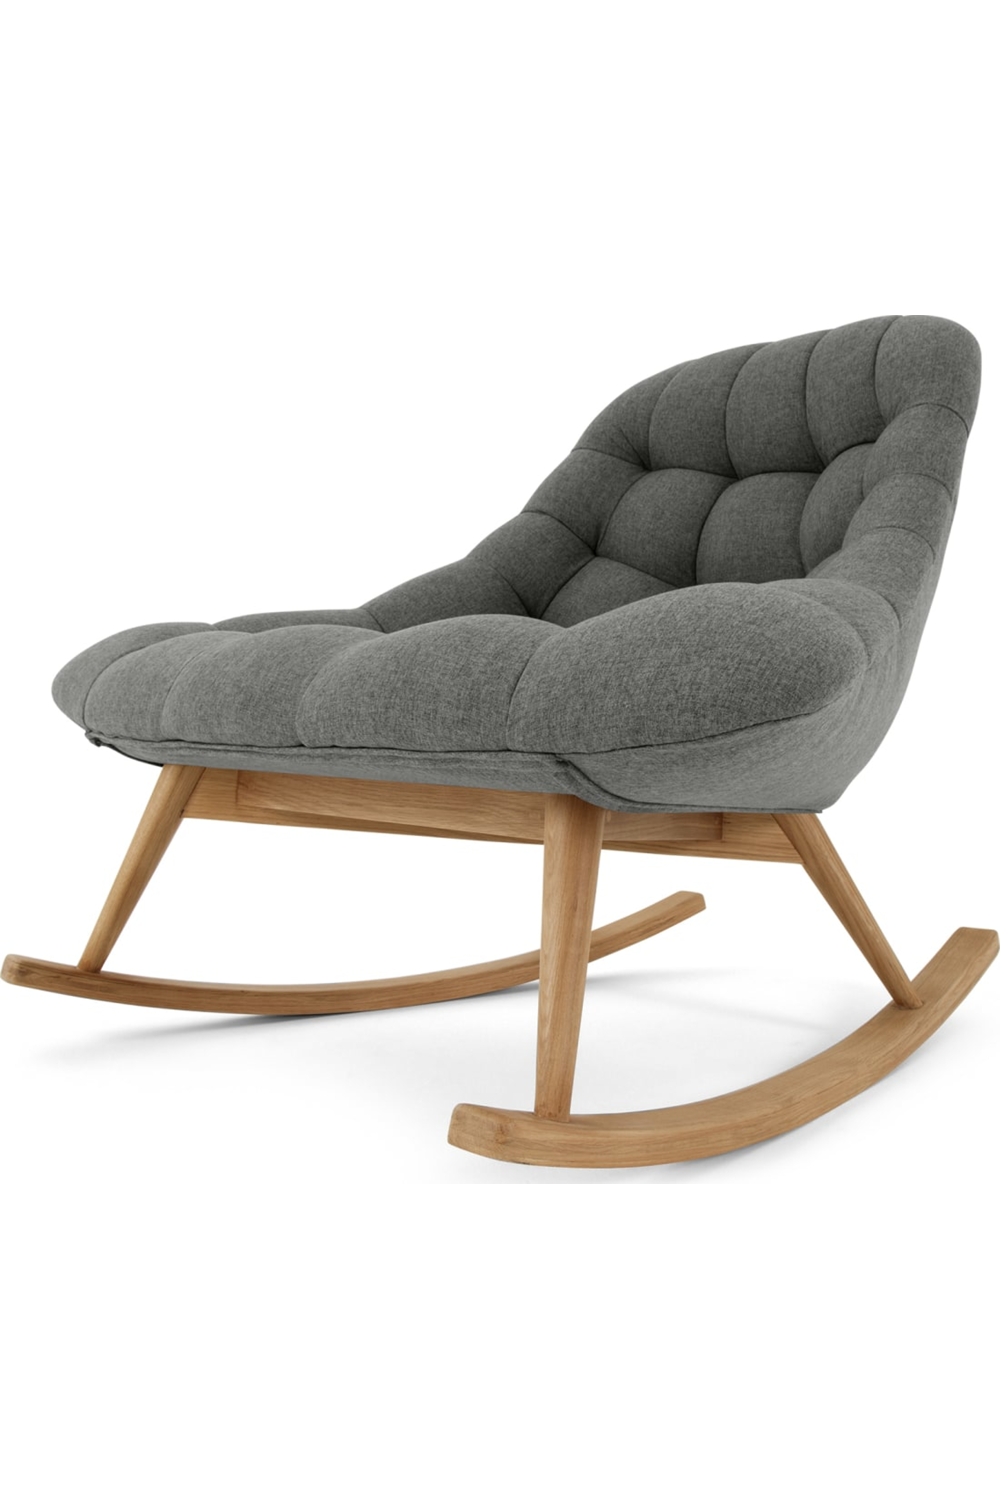 Made Lounge Sessel Grau Rocking Chair Chair Outdoor Rocking